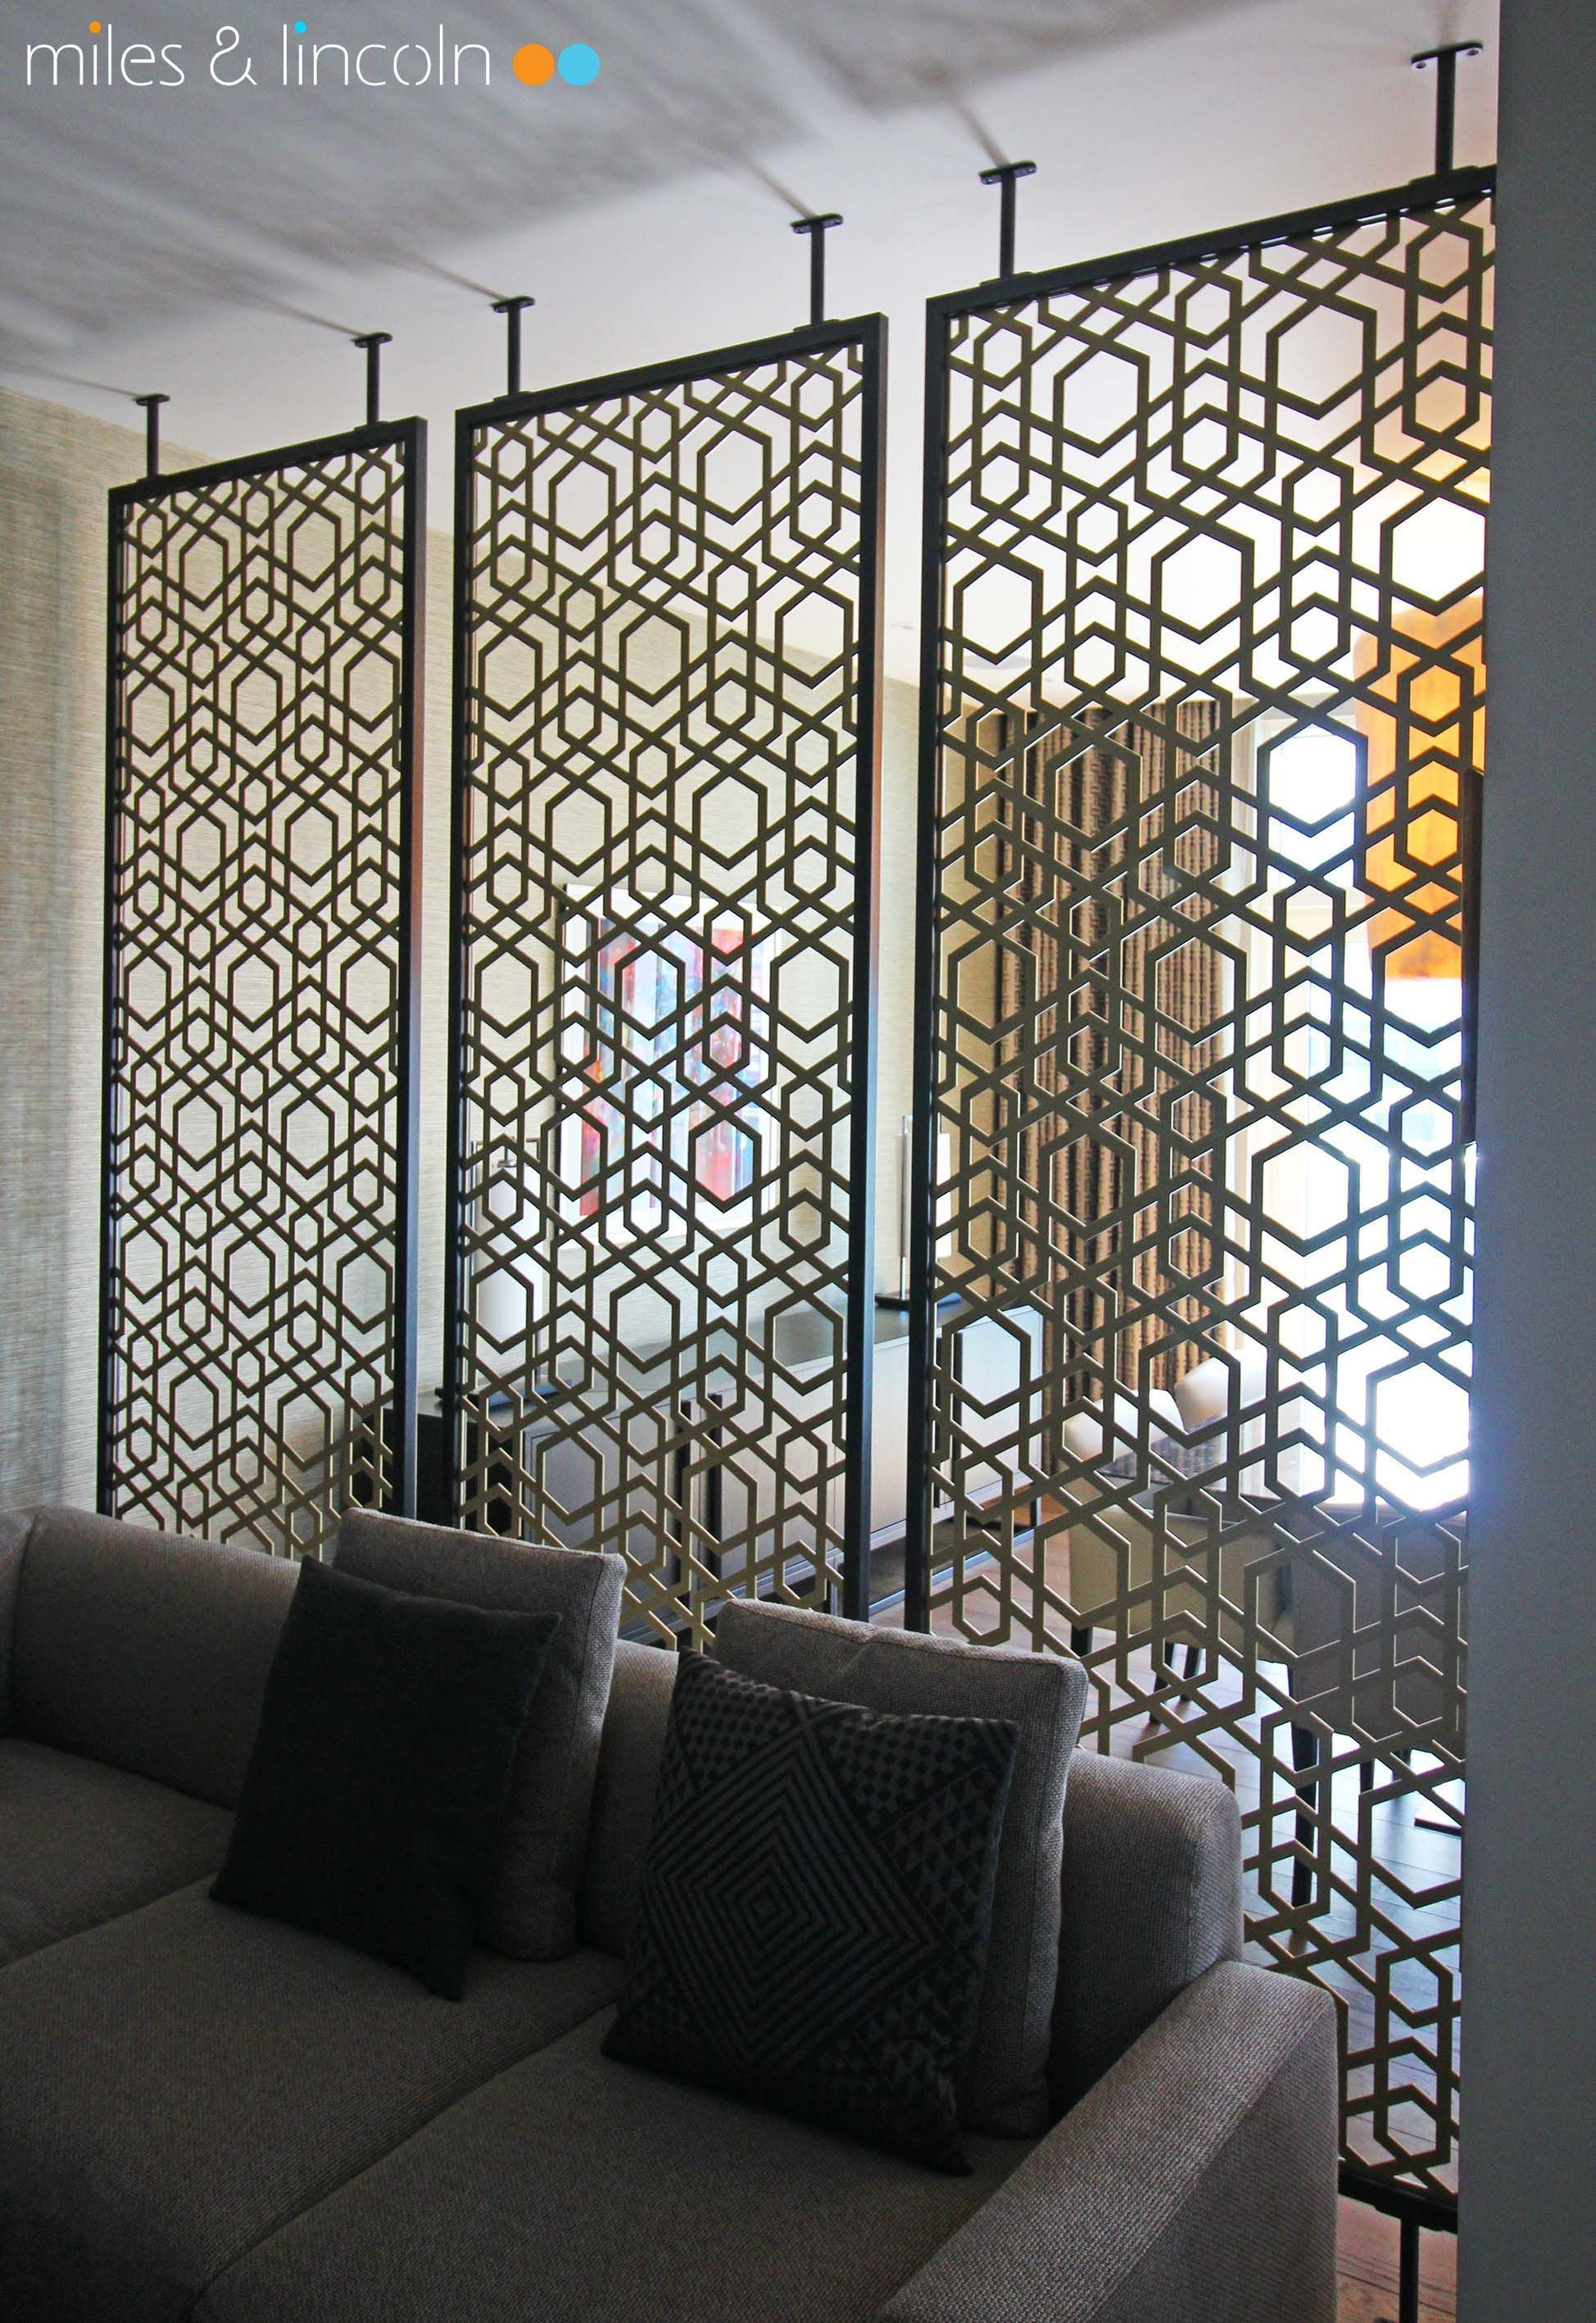 33+Marvelous Room Divider Ideas to Optimize Your Space